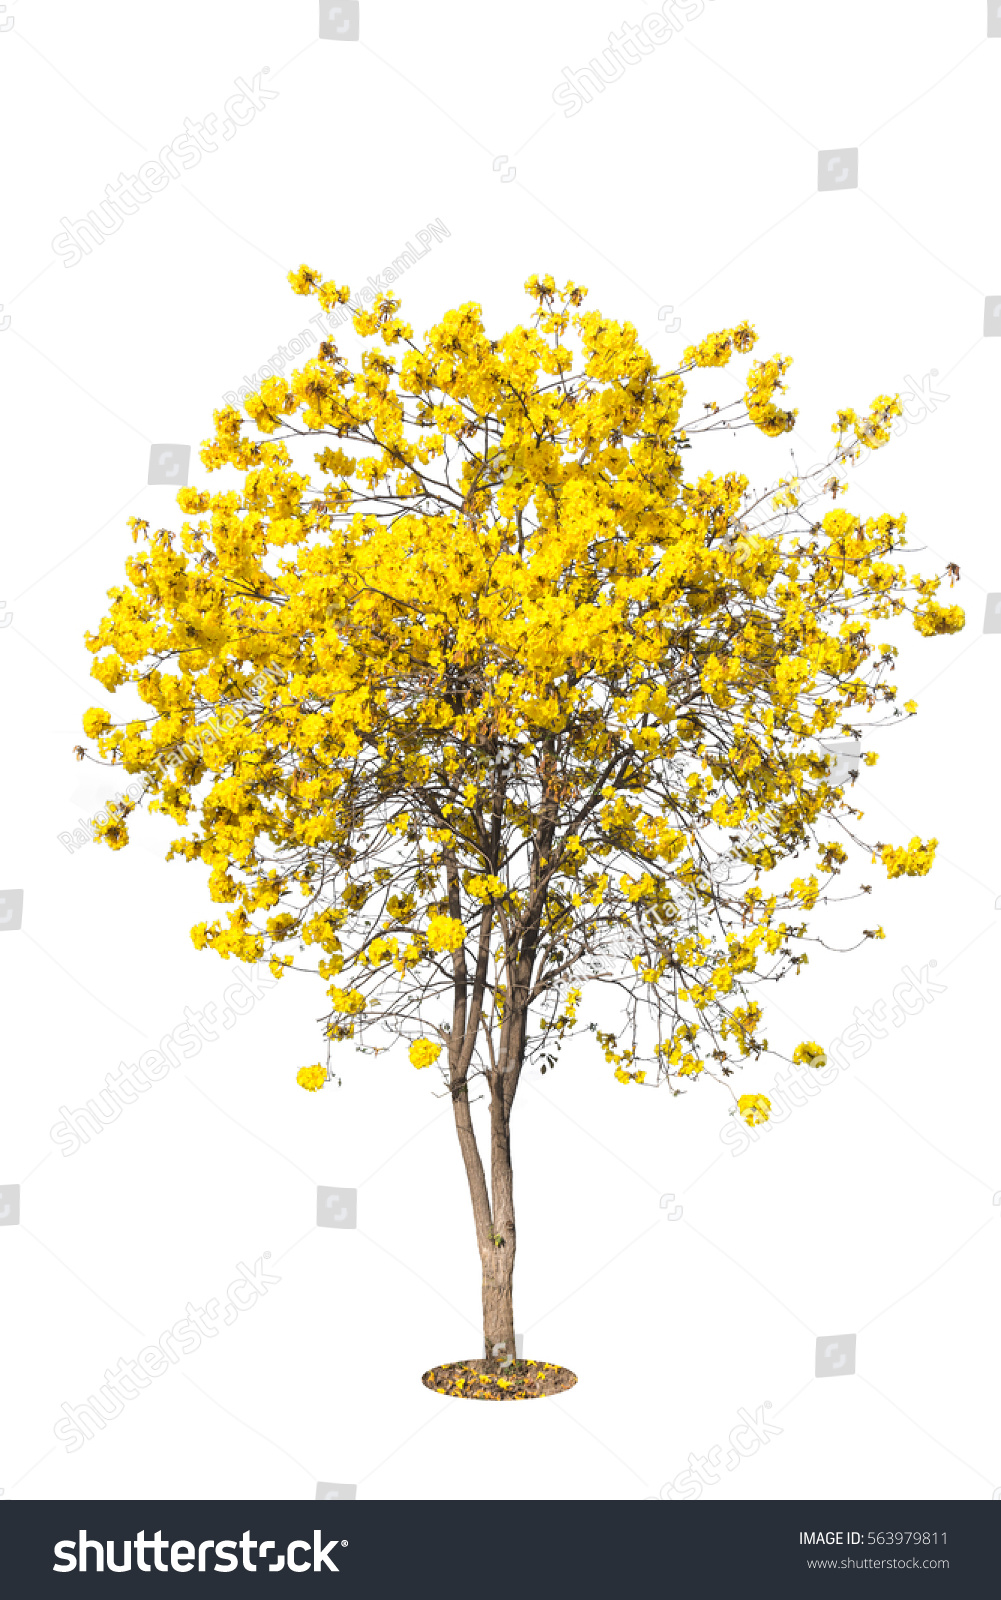 Golden tree yellow flowers tree tabebuia stock photo edit now golden tree yellow flowers tree tabebuia isolated on white background tropical trees isolated mightylinksfo